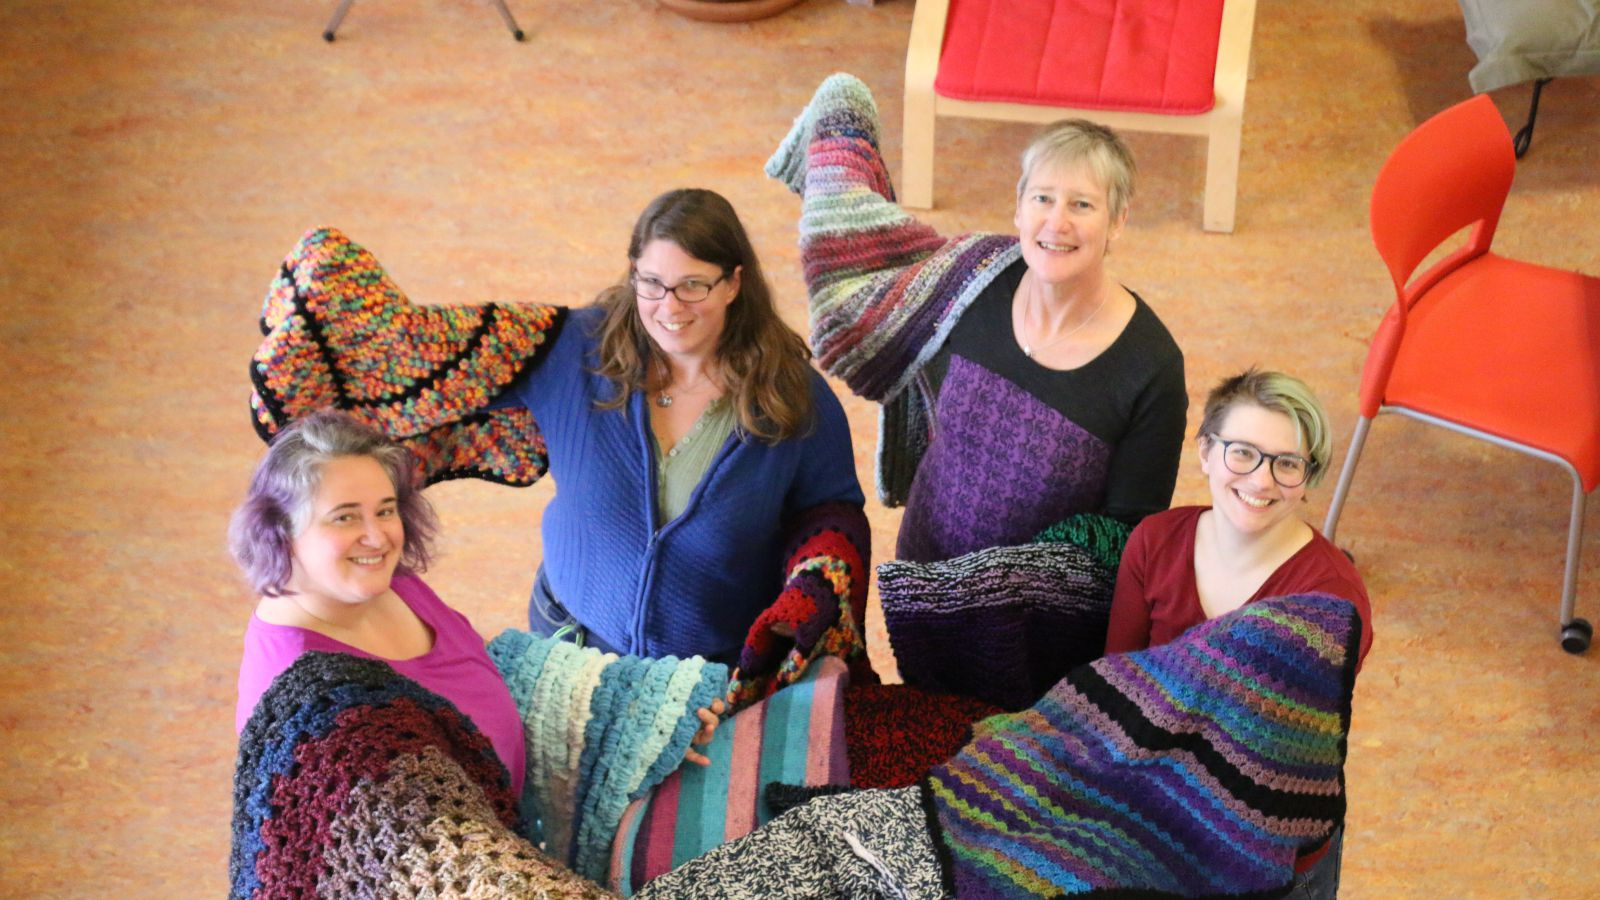 four women standing in a circle with knitted and crocheted blankets